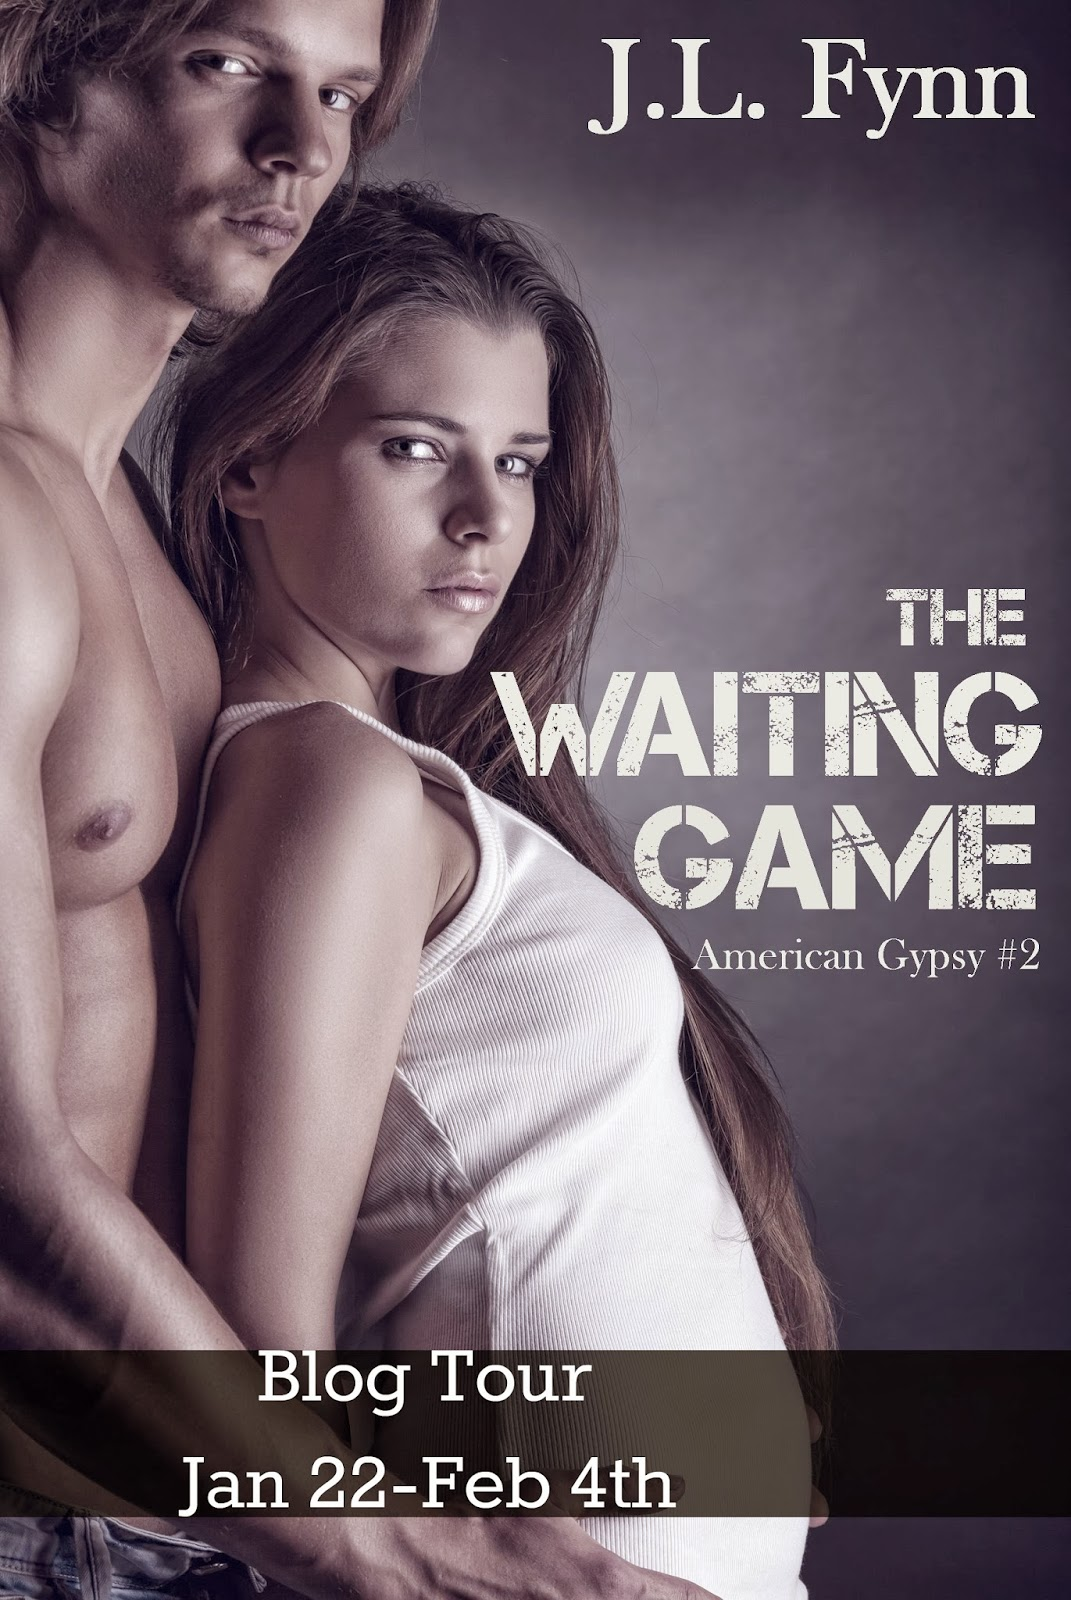 http://www.inkslingerpr.com/2014/01/21/the-waiting-game-blog-tour-and-release-day-launch/